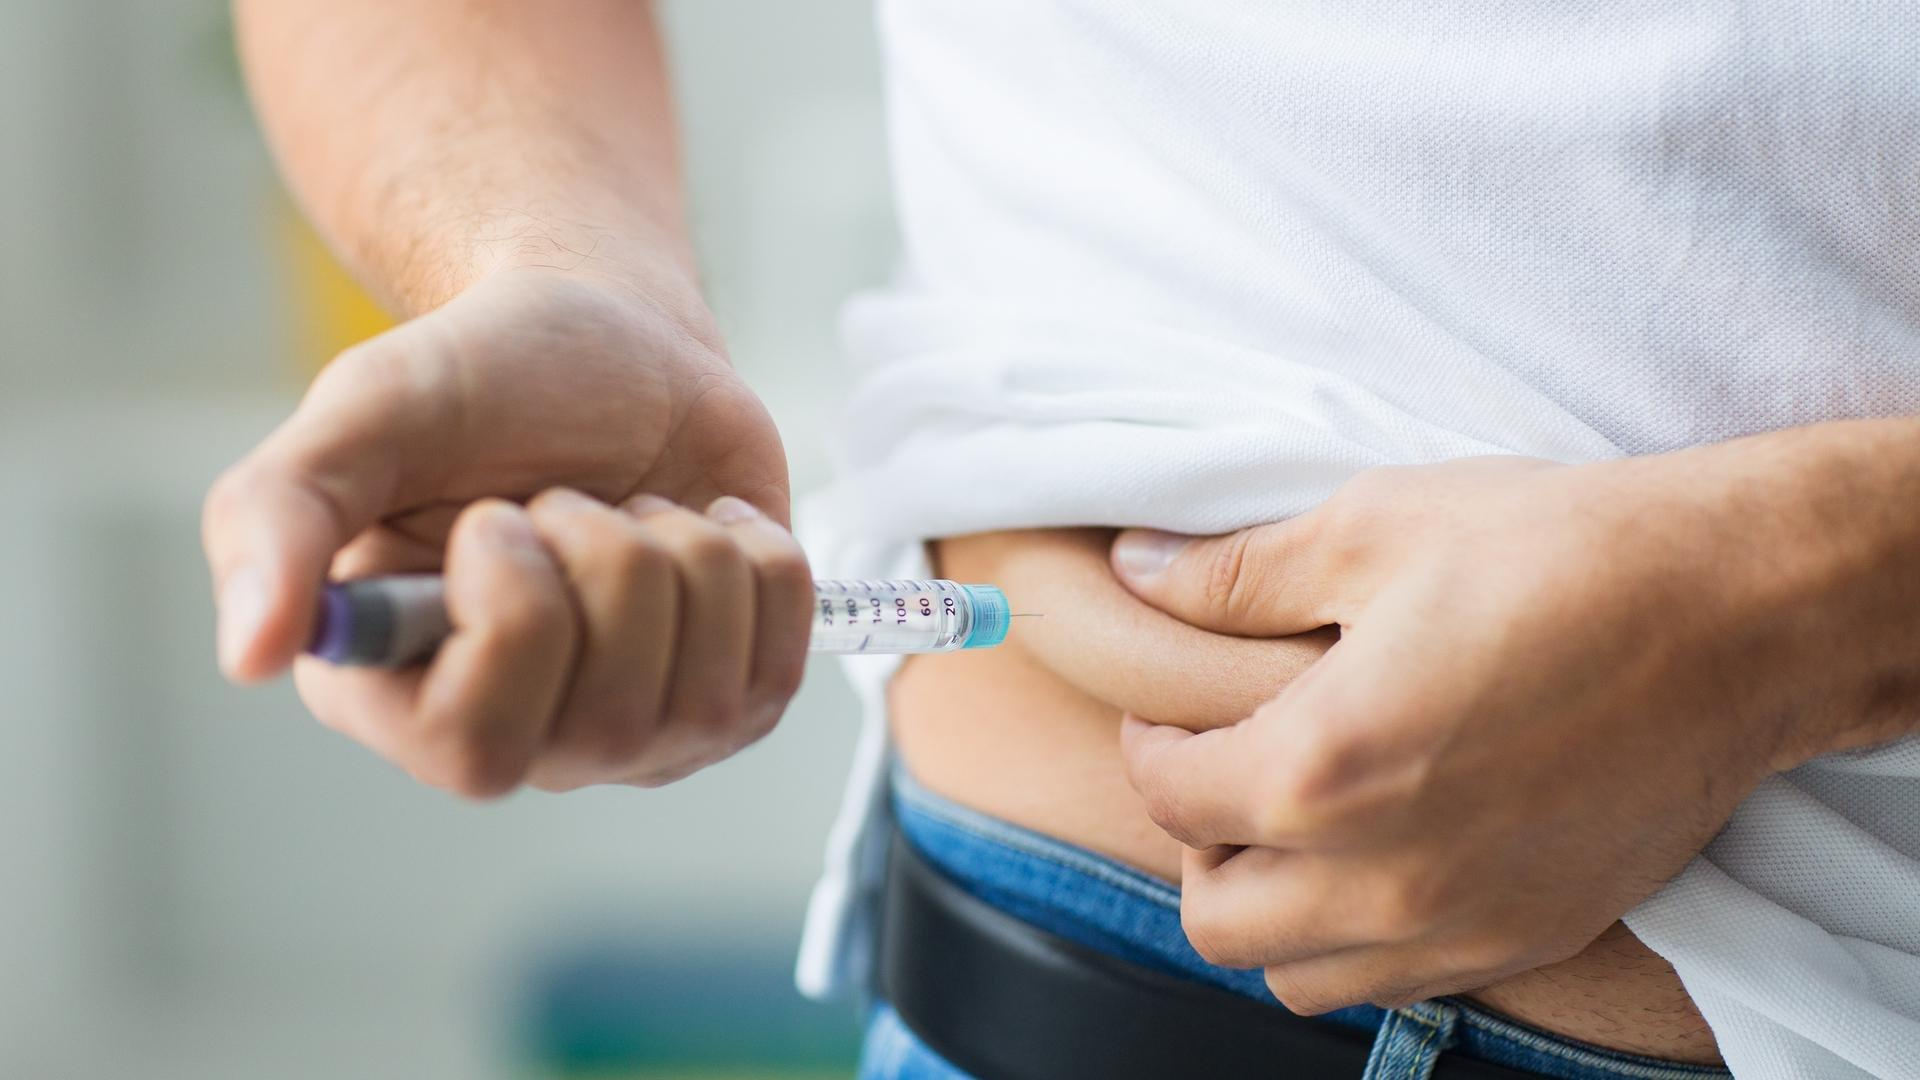 Insulin Therapy For Diabetes: Everything You Need To Know